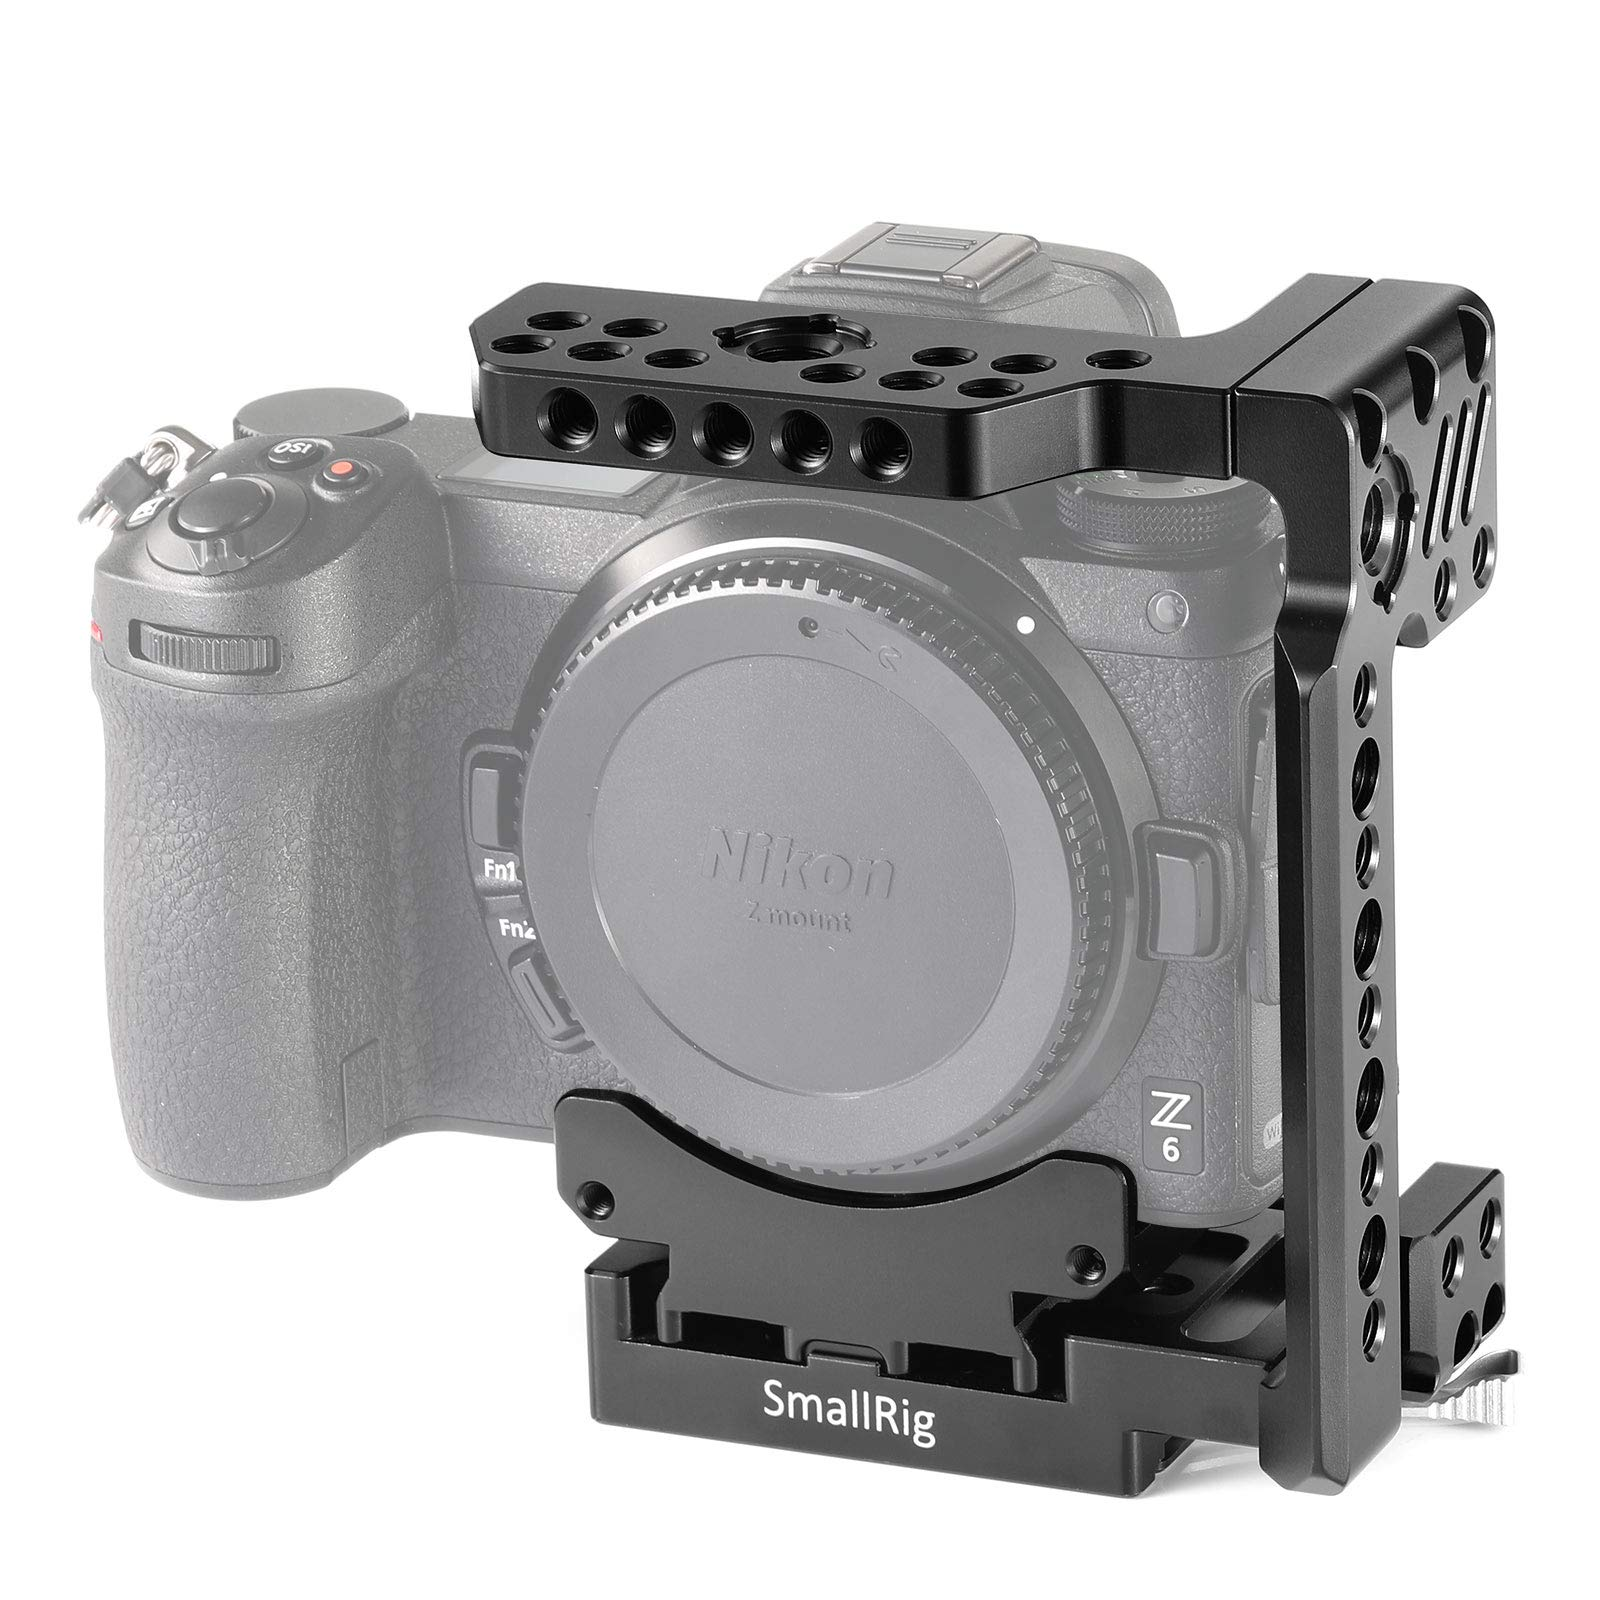 SMALLRIG Quick Release Half Cage for Nikon Z6 and Z7 2262 by SMALLRIG